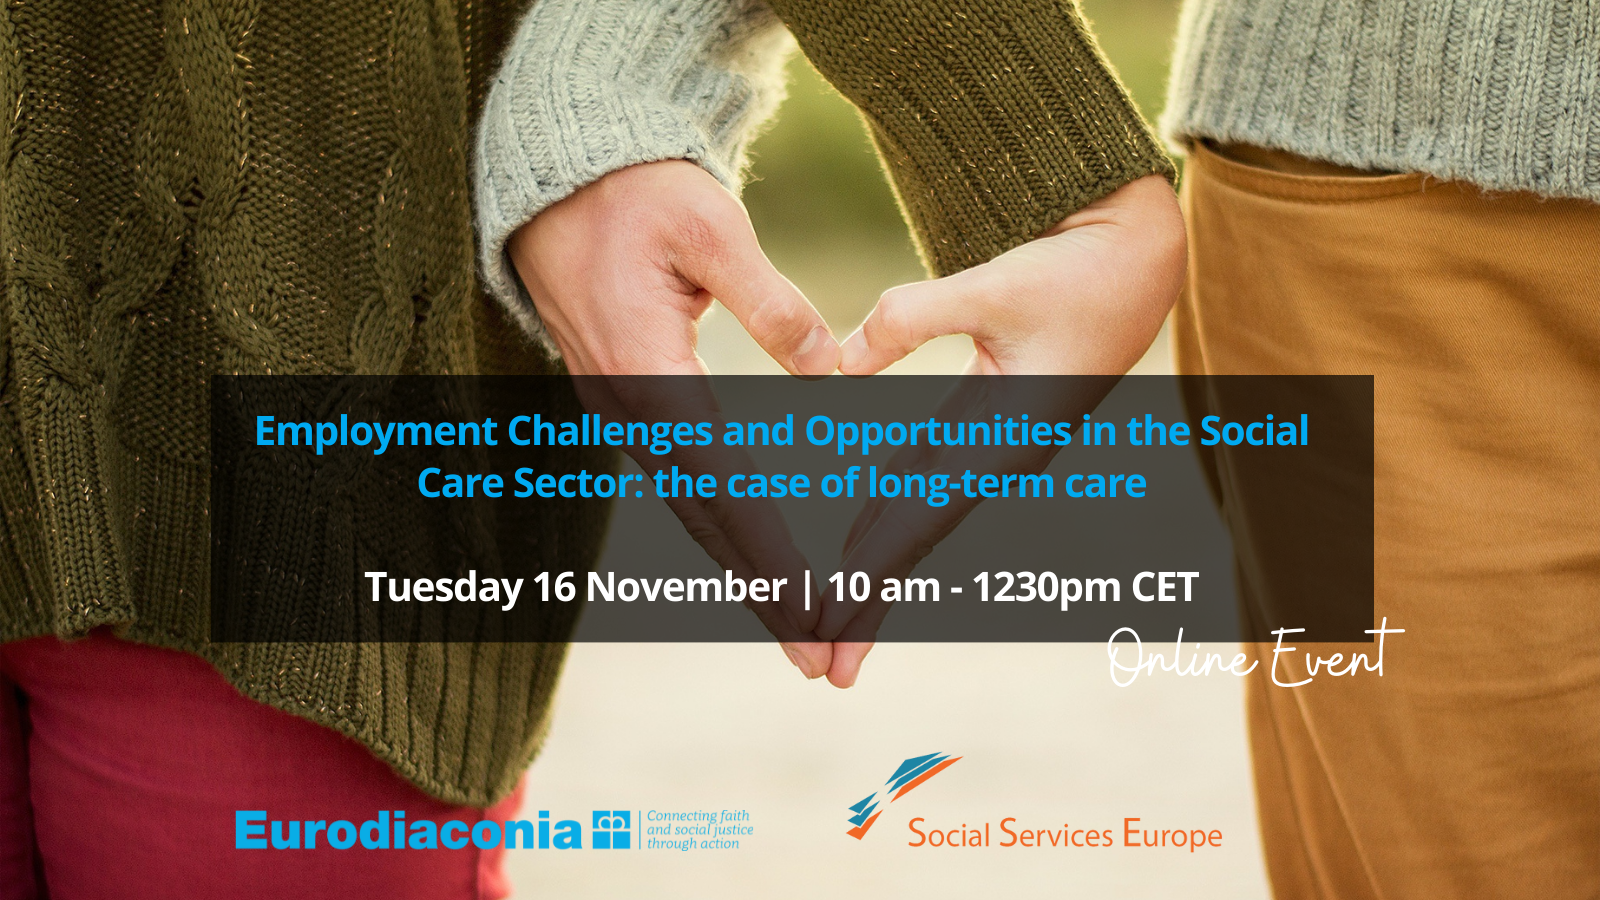 Employment Challenges and Opportunities in the Social Care Sector: the case of long-term care